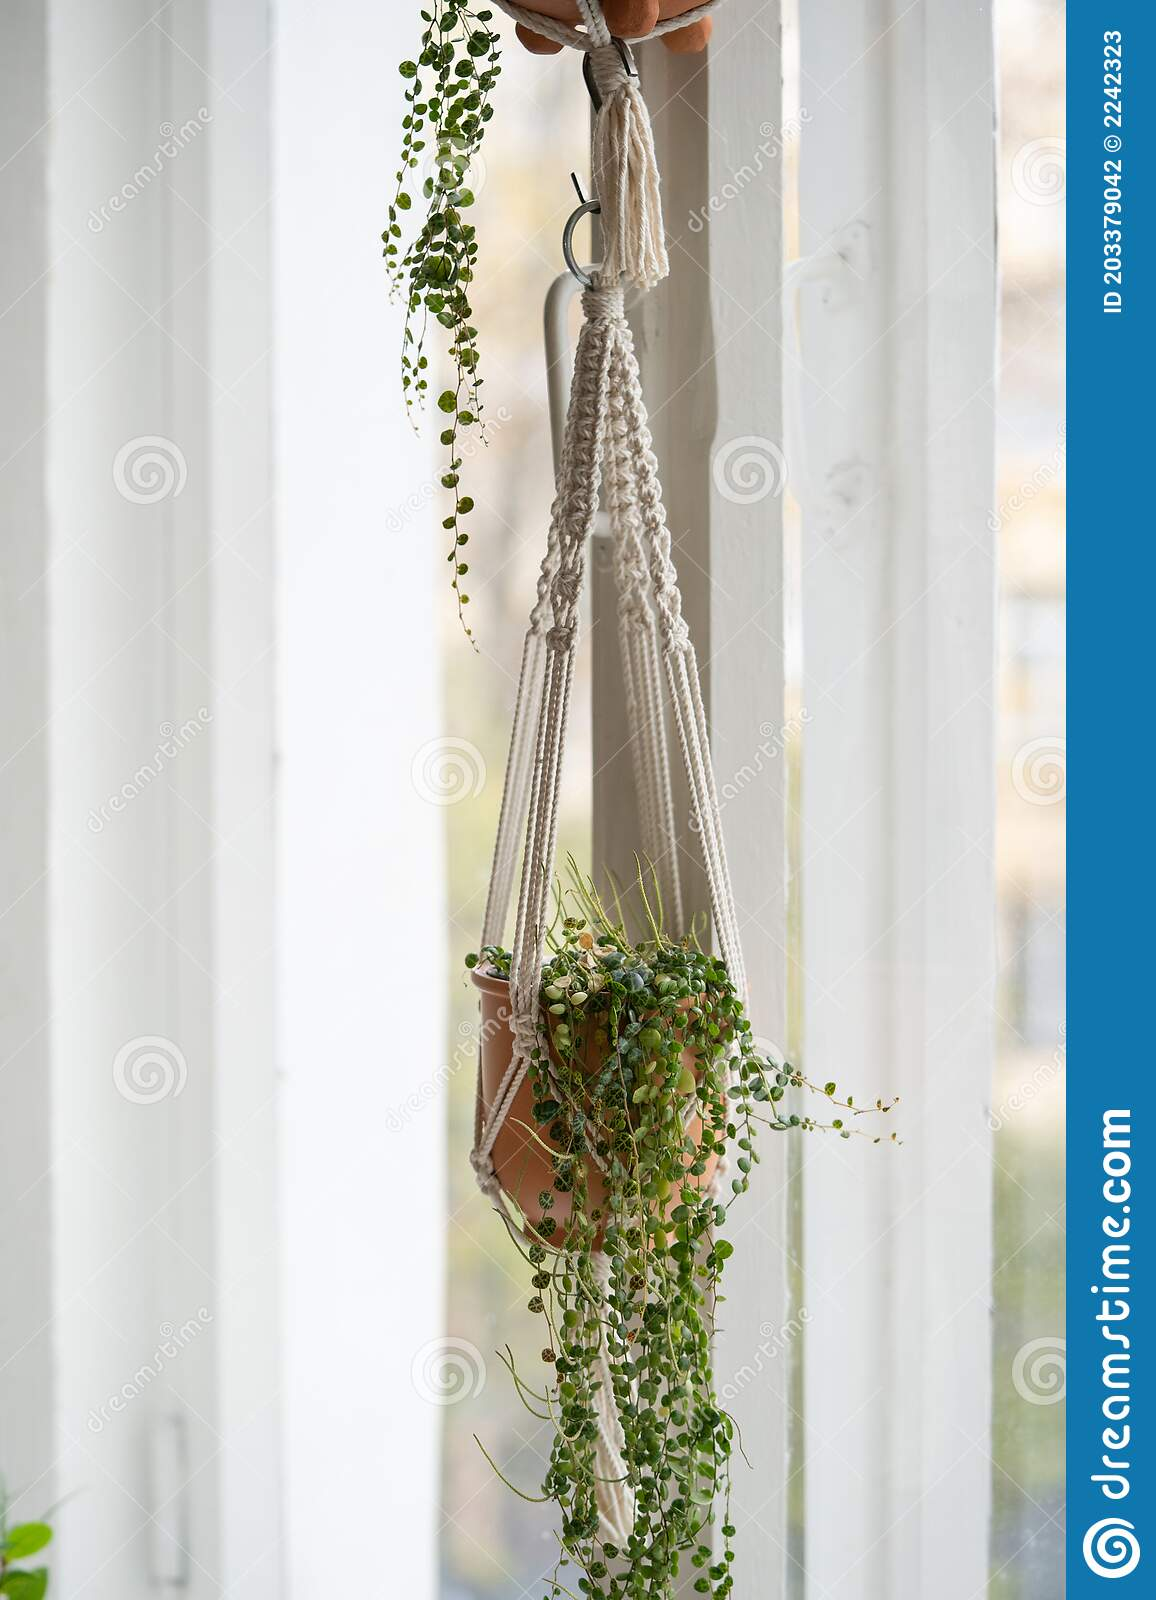 Handmade Cotton Macrame Plant Hanger Hanging From The Window In Living Room Love For Indoor Plants Hobby Stock Photo Image Of Houseplant Greenery 203379042